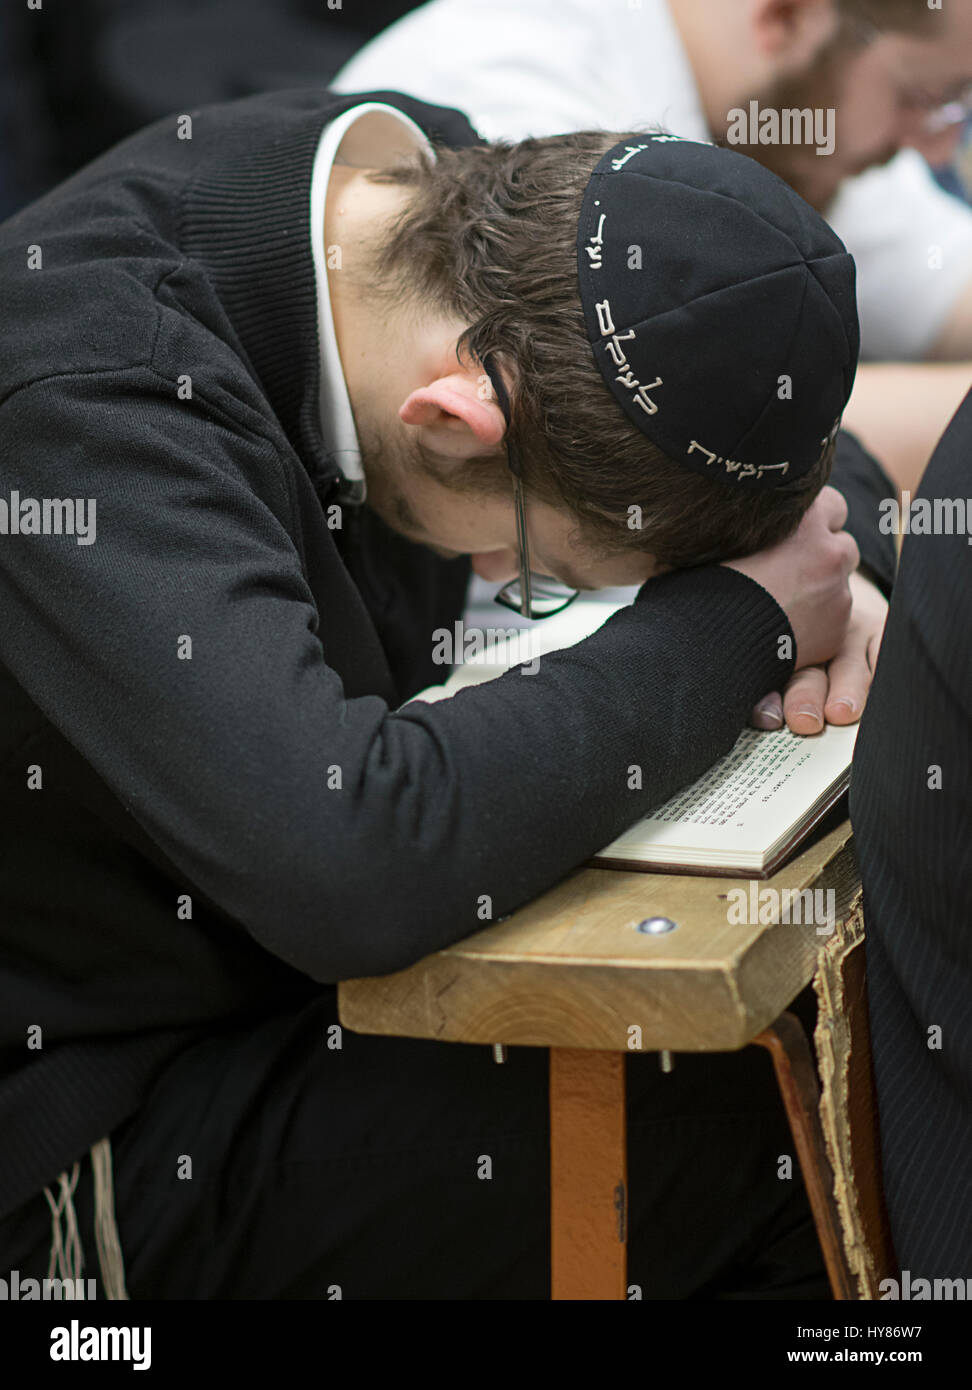 An unidentified religious Jewish boy studying alone from a Hebrew book in a synagogue in Brooklyn, New York. - Stock Image